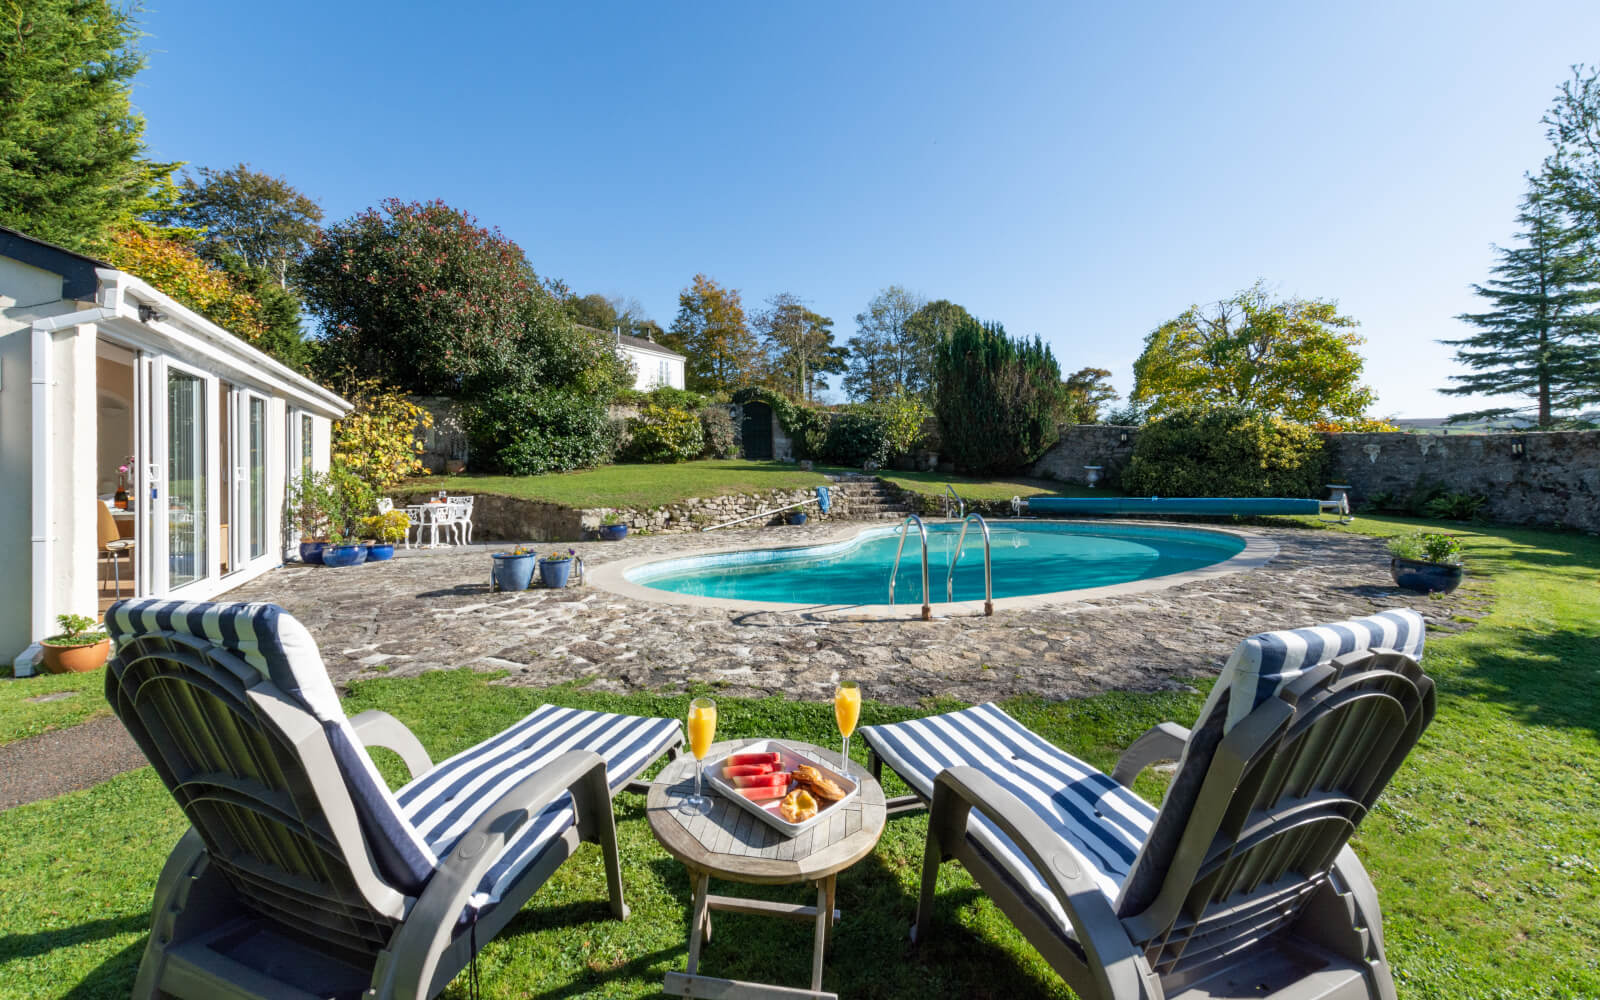 Holiday Cottages With Swimming Pools In Helston To Rent - Save up to 60%